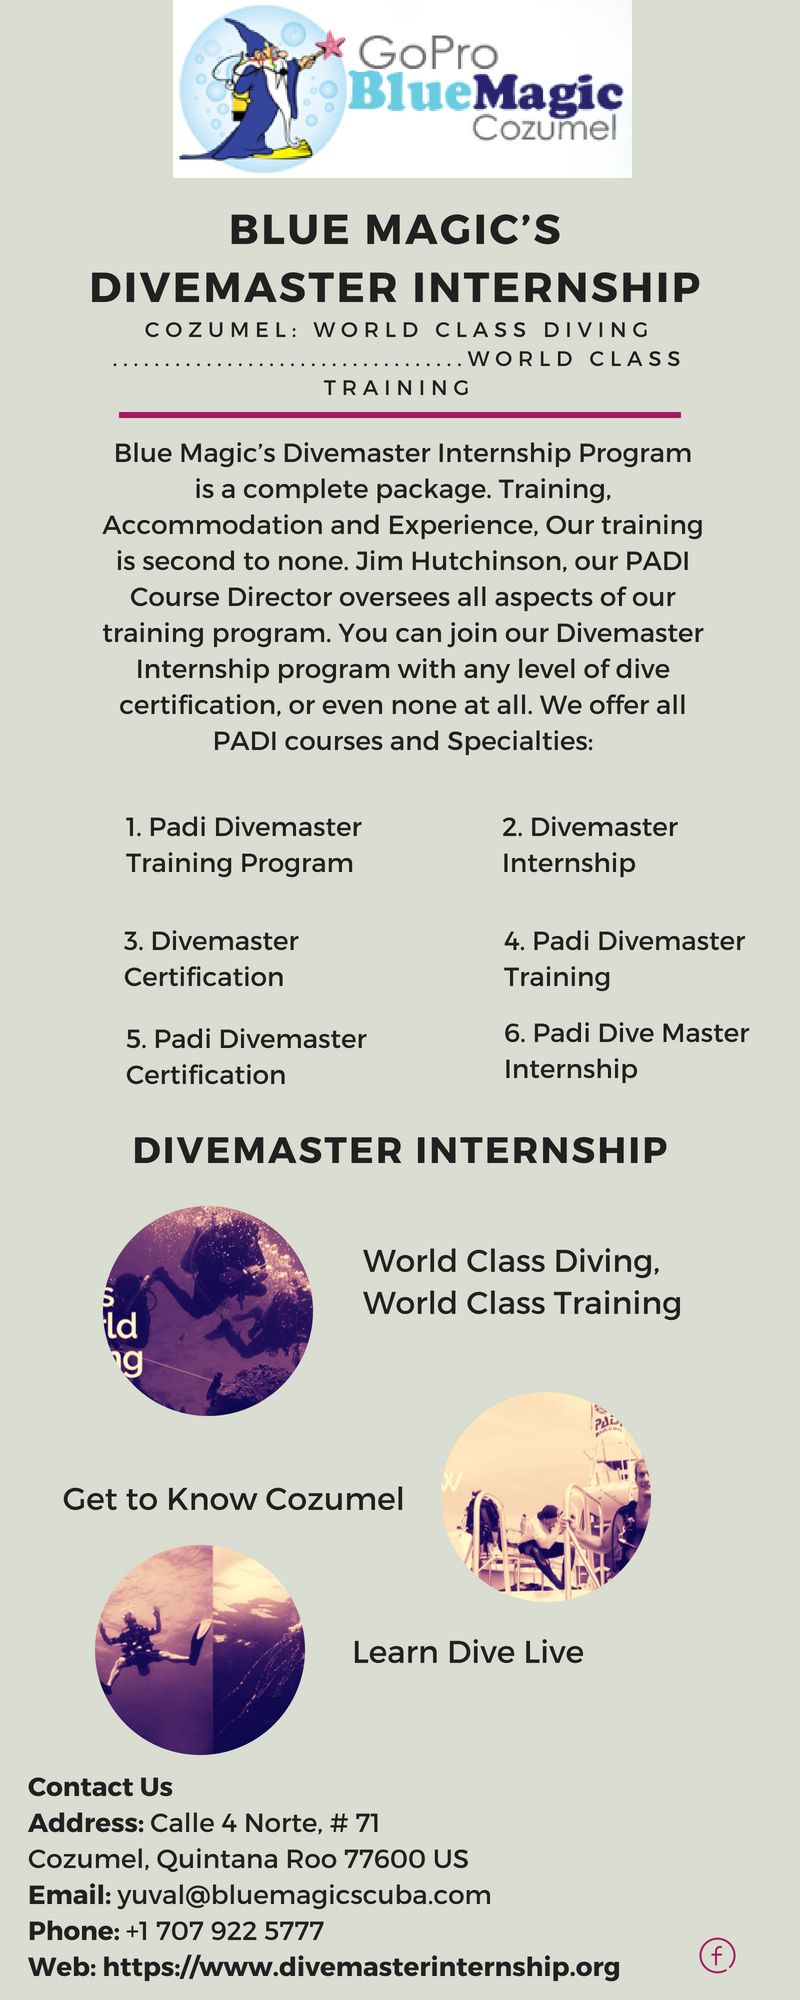 Blue Magics Divemaster Internship Program Is A Complete Package